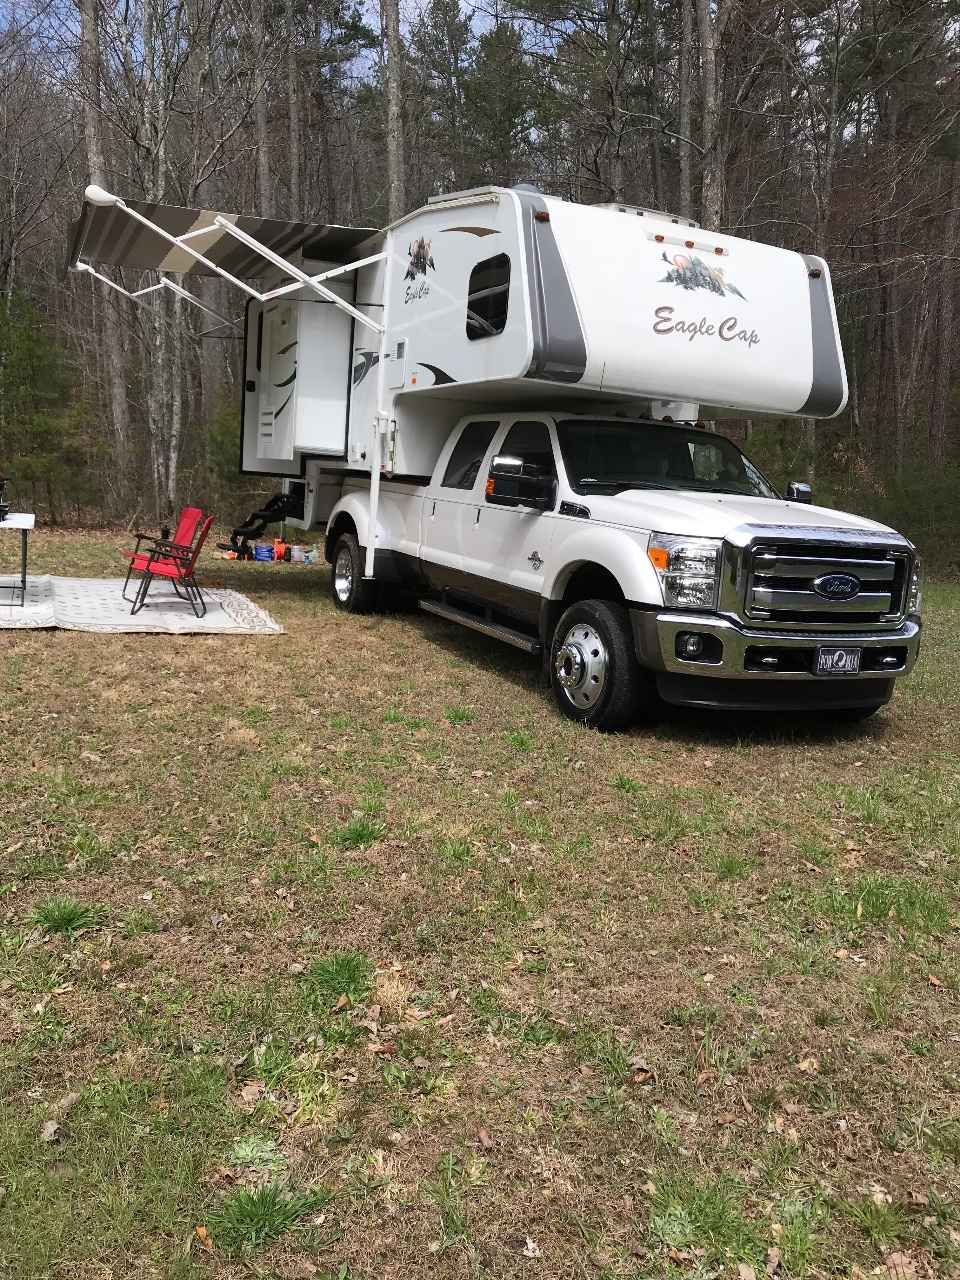 2017 Used Adventurer Lp Eagle Cap 1165 Truck Camper In